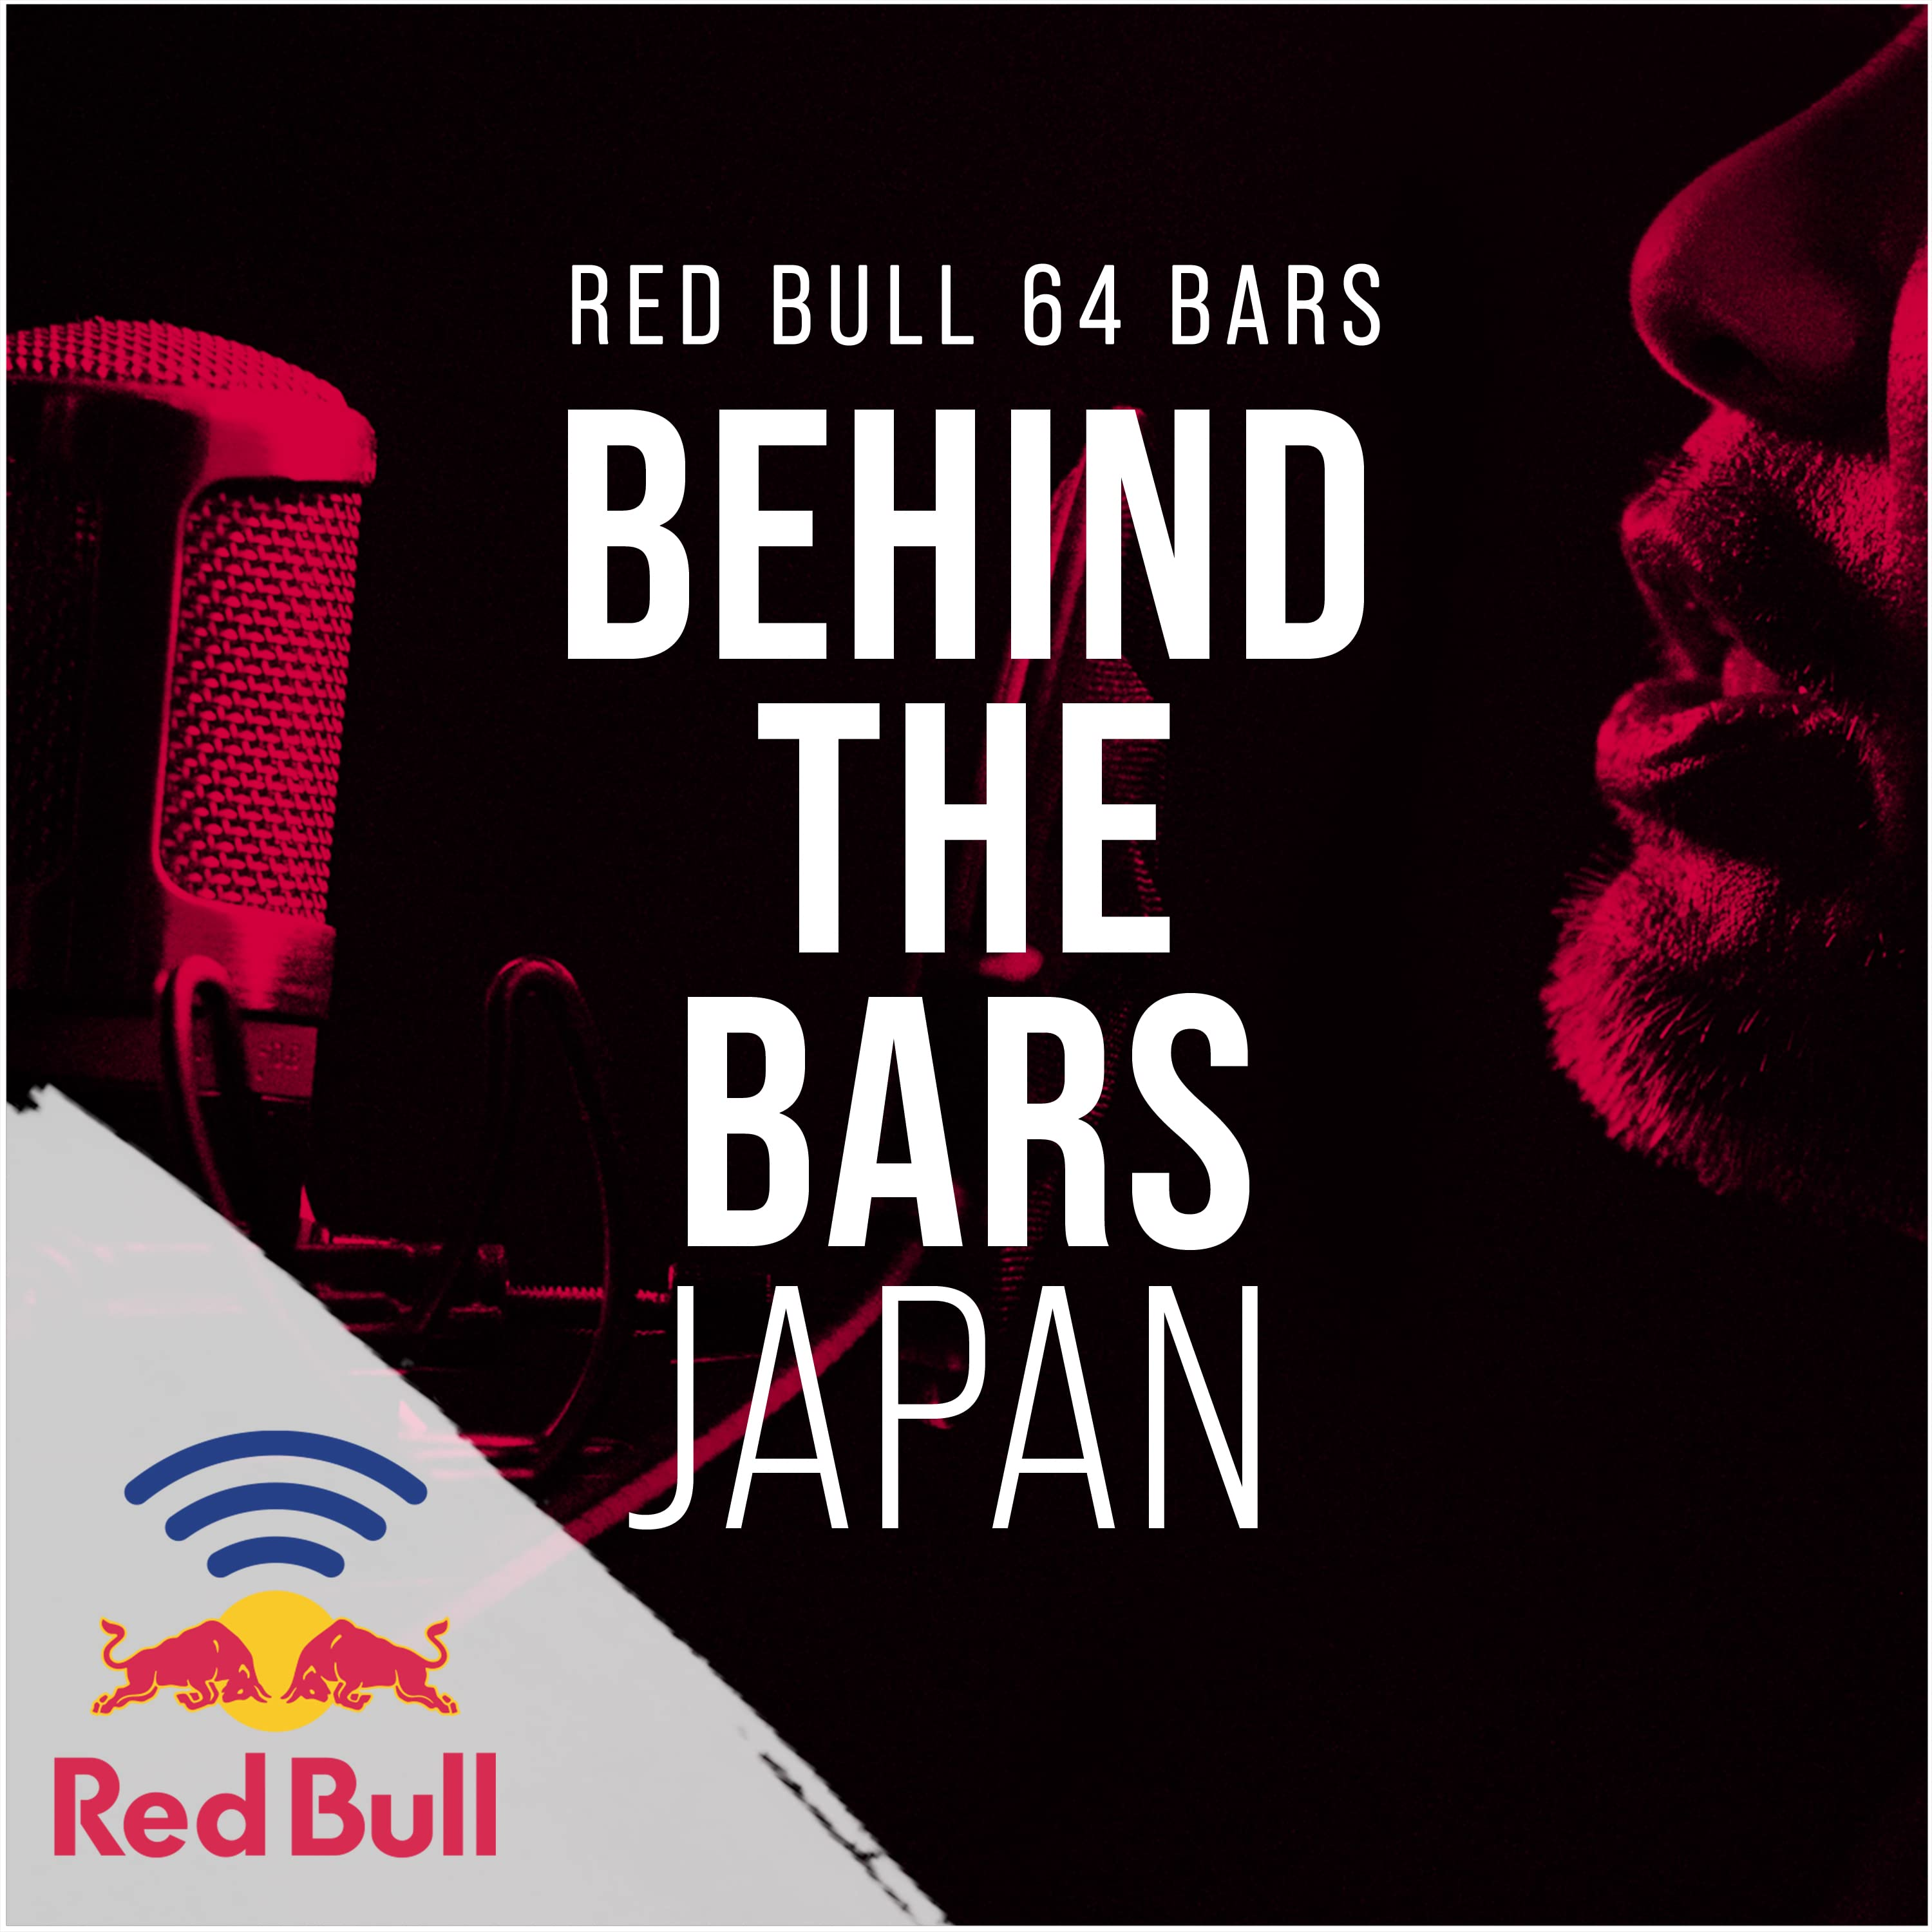 Behind the Bars Japan - Red Bull 64 Bars